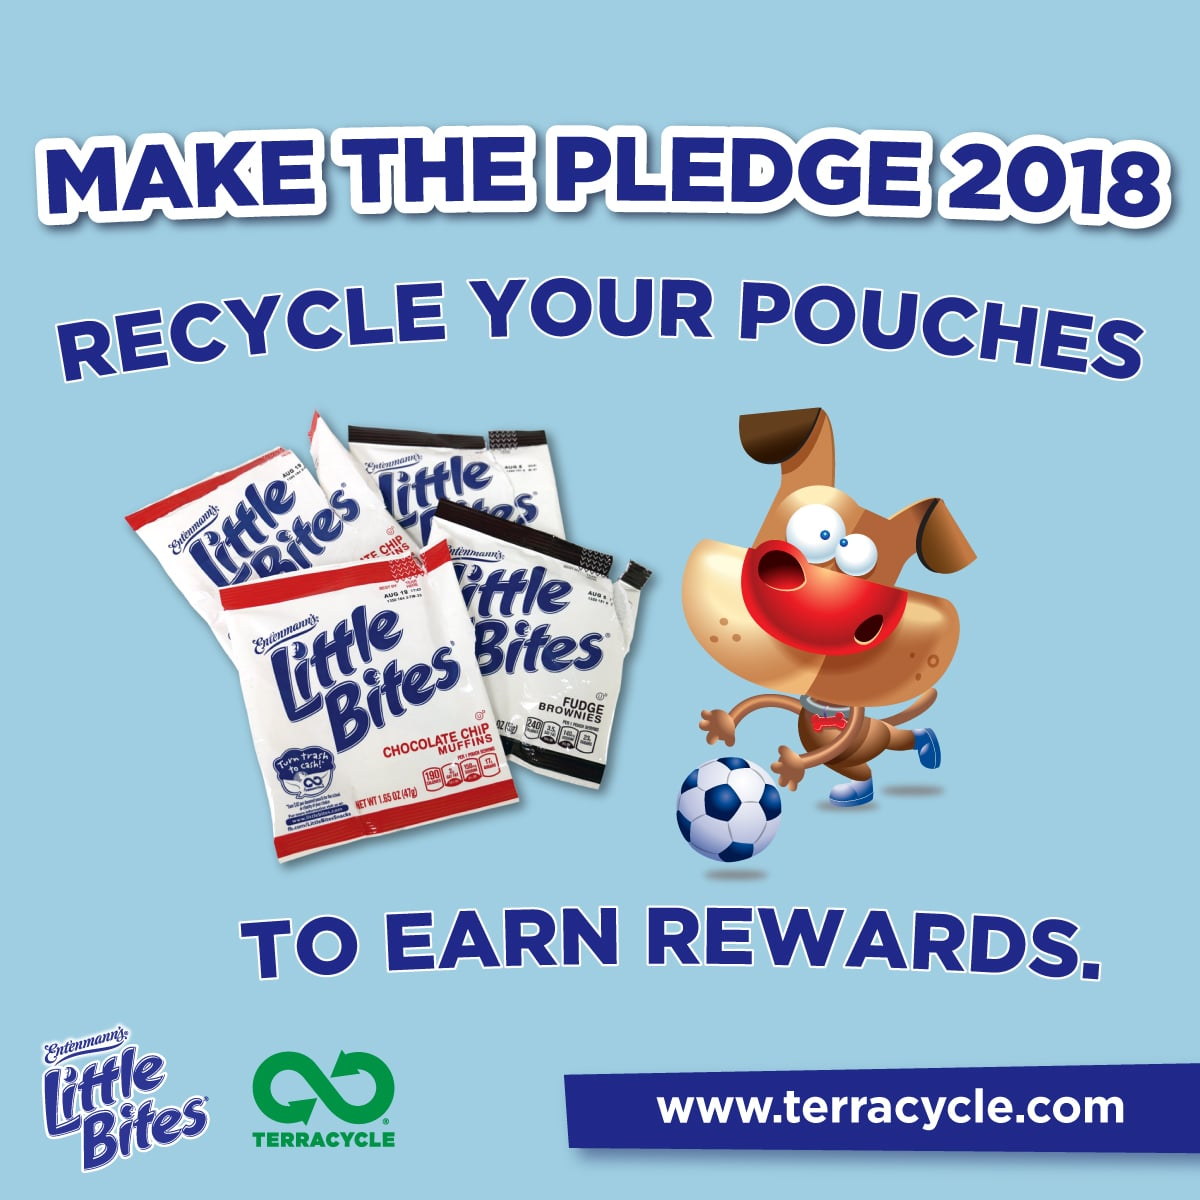 earn rewards by recycling little bites pouches